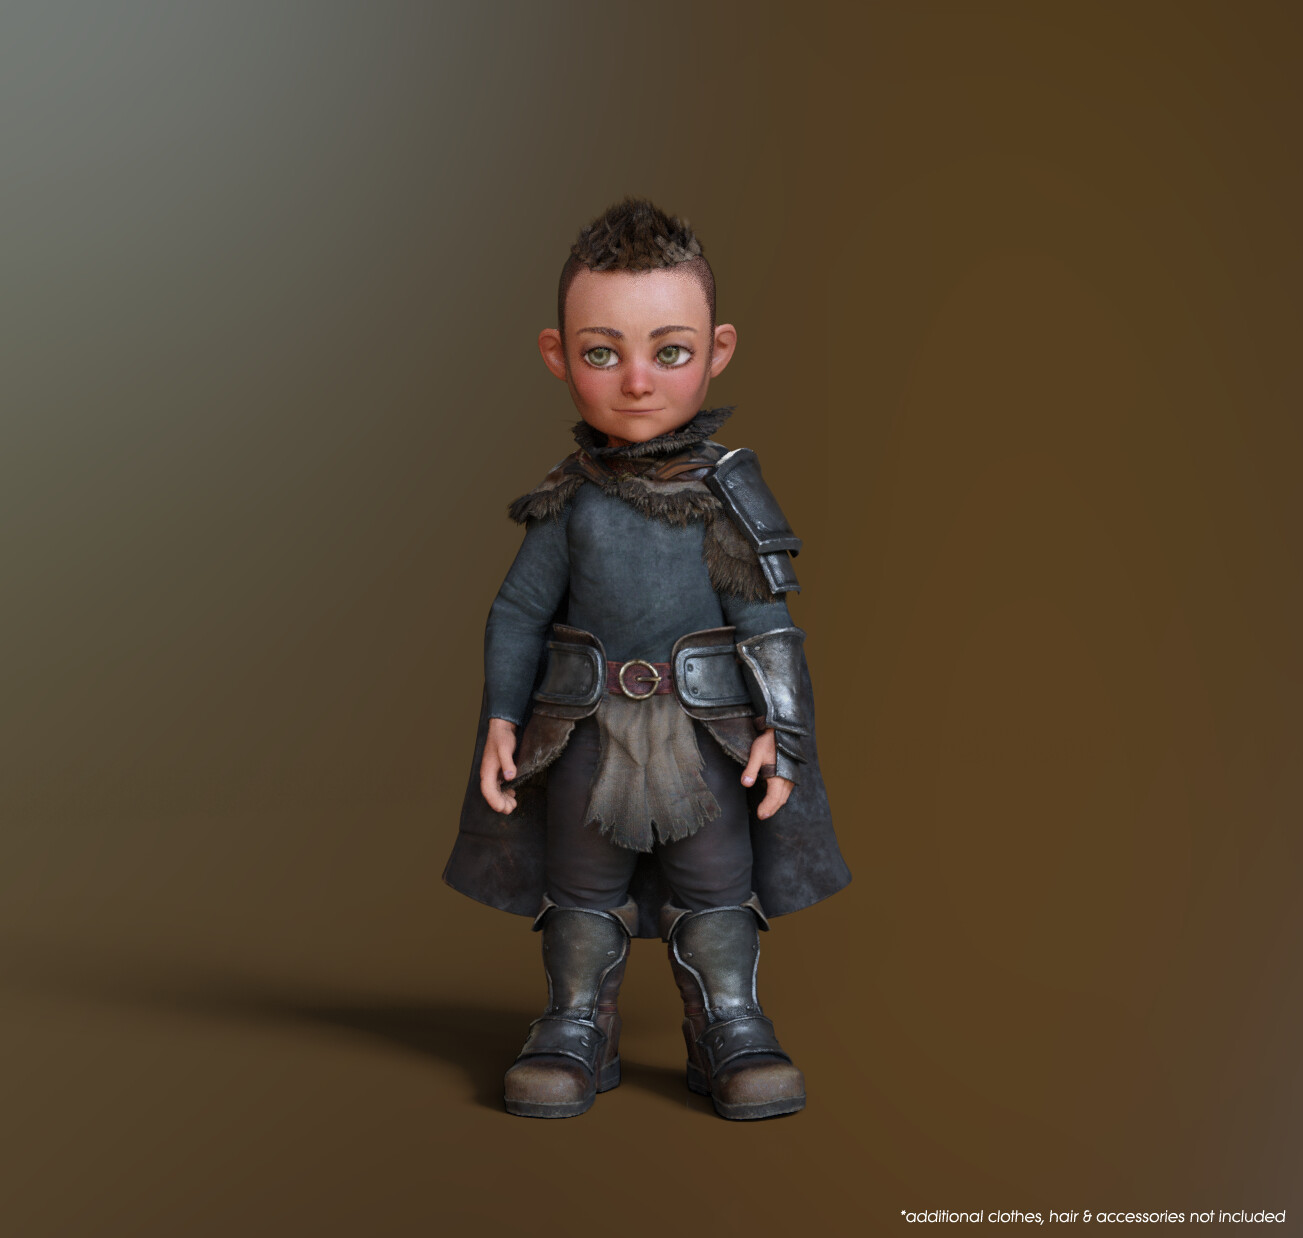 CC3 Stylized Base Neutral - Child Morph